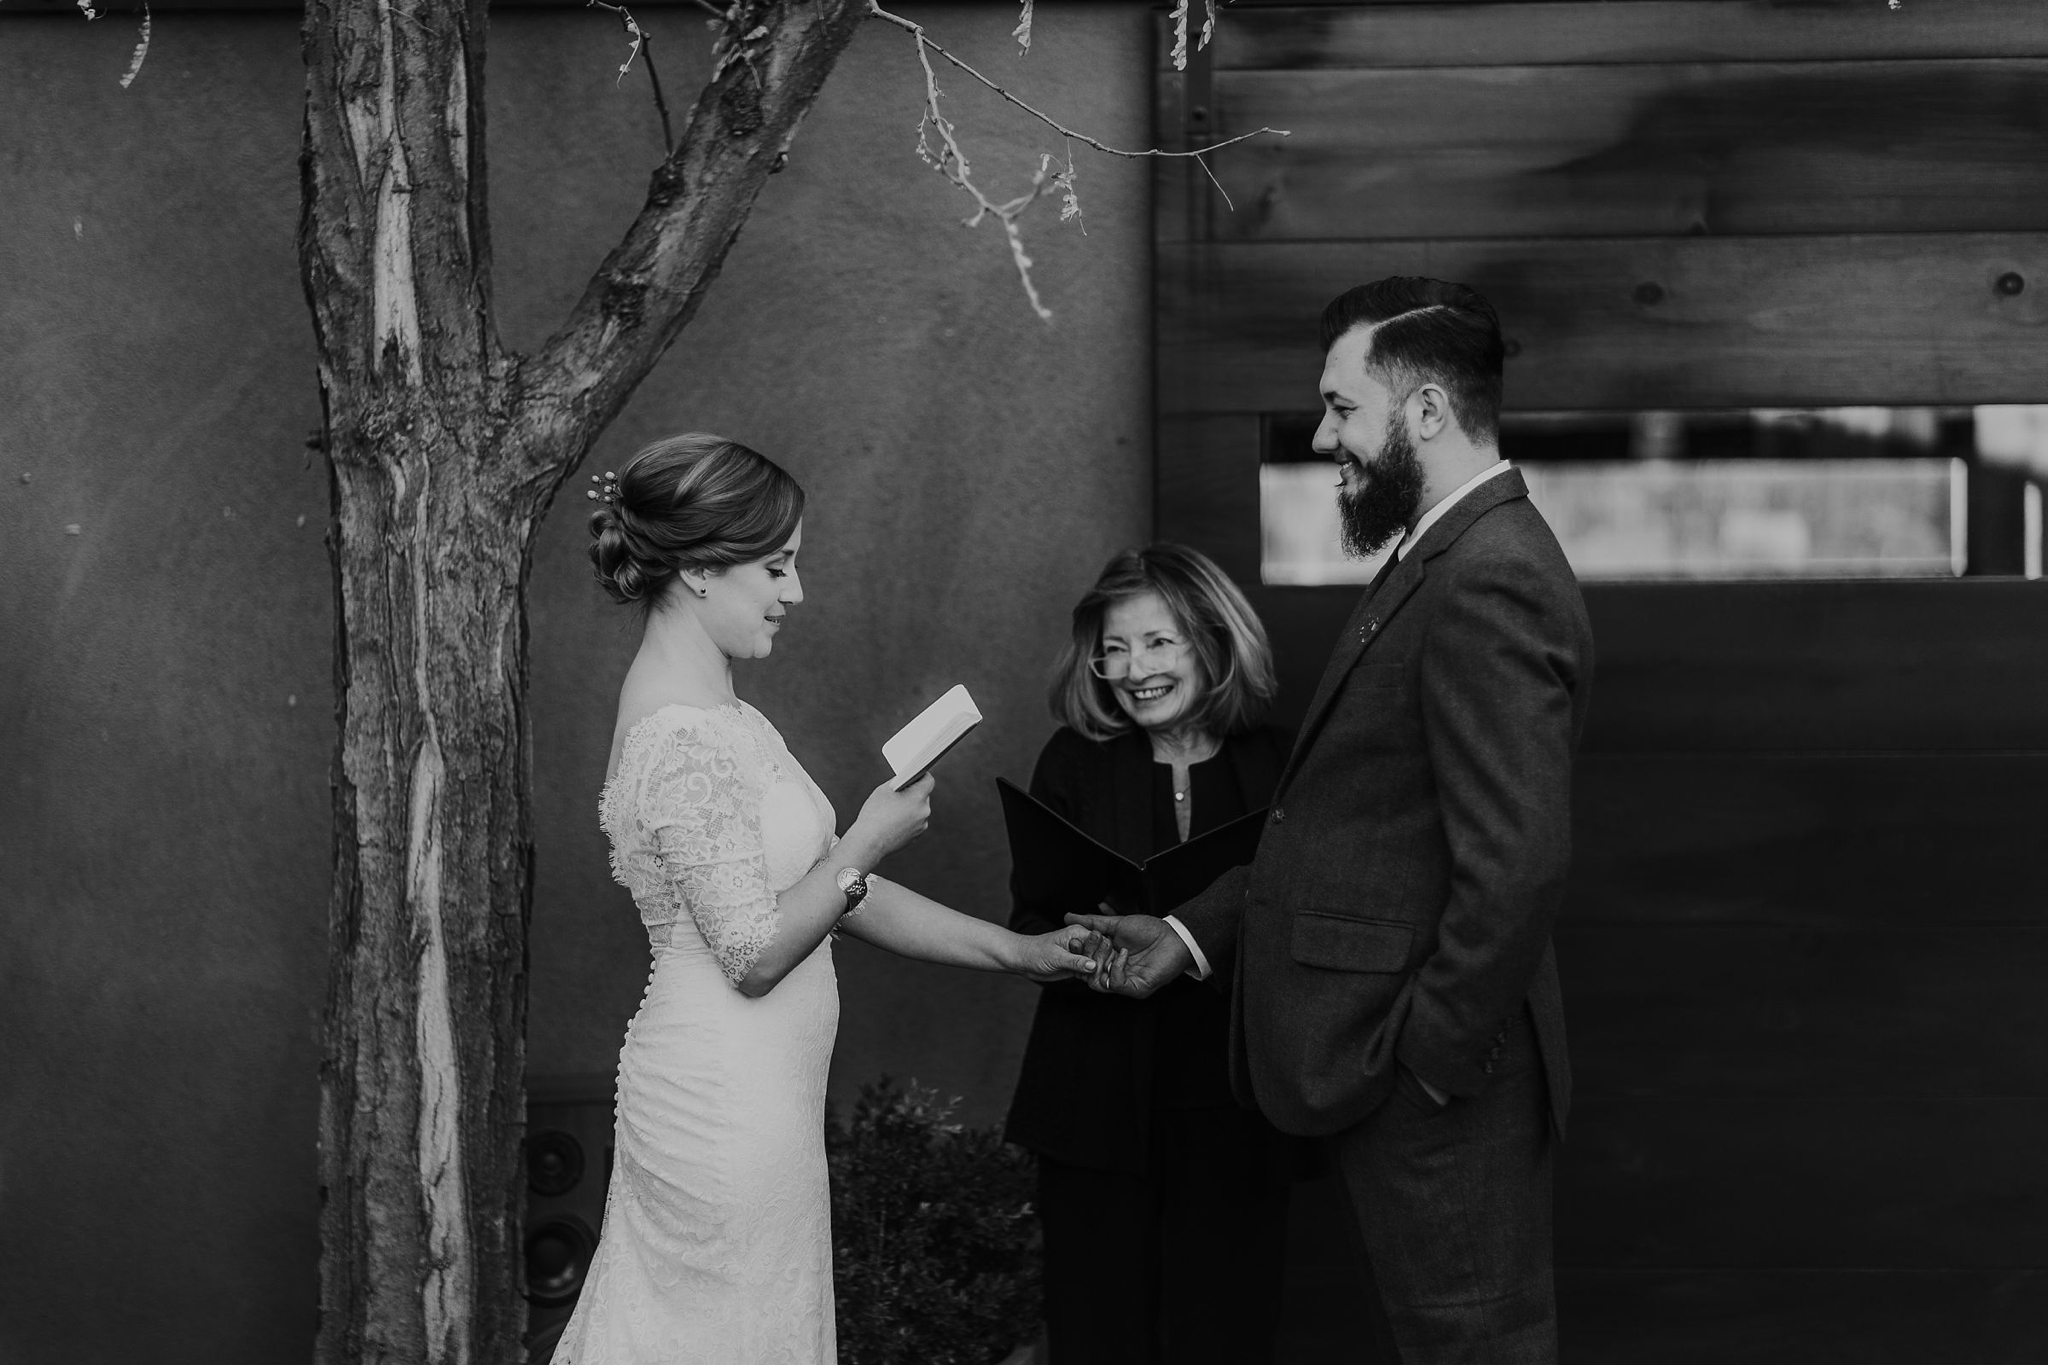 Alicia+lucia+photography+-+albuquerque+wedding+photographer+-+santa+fe+wedding+photography+-+new+mexico+wedding+photographer+-+new+mexico+wedding+-+wedding+vows+-+writing+your+own+vows+-+wedding+inspo_0017.jpg